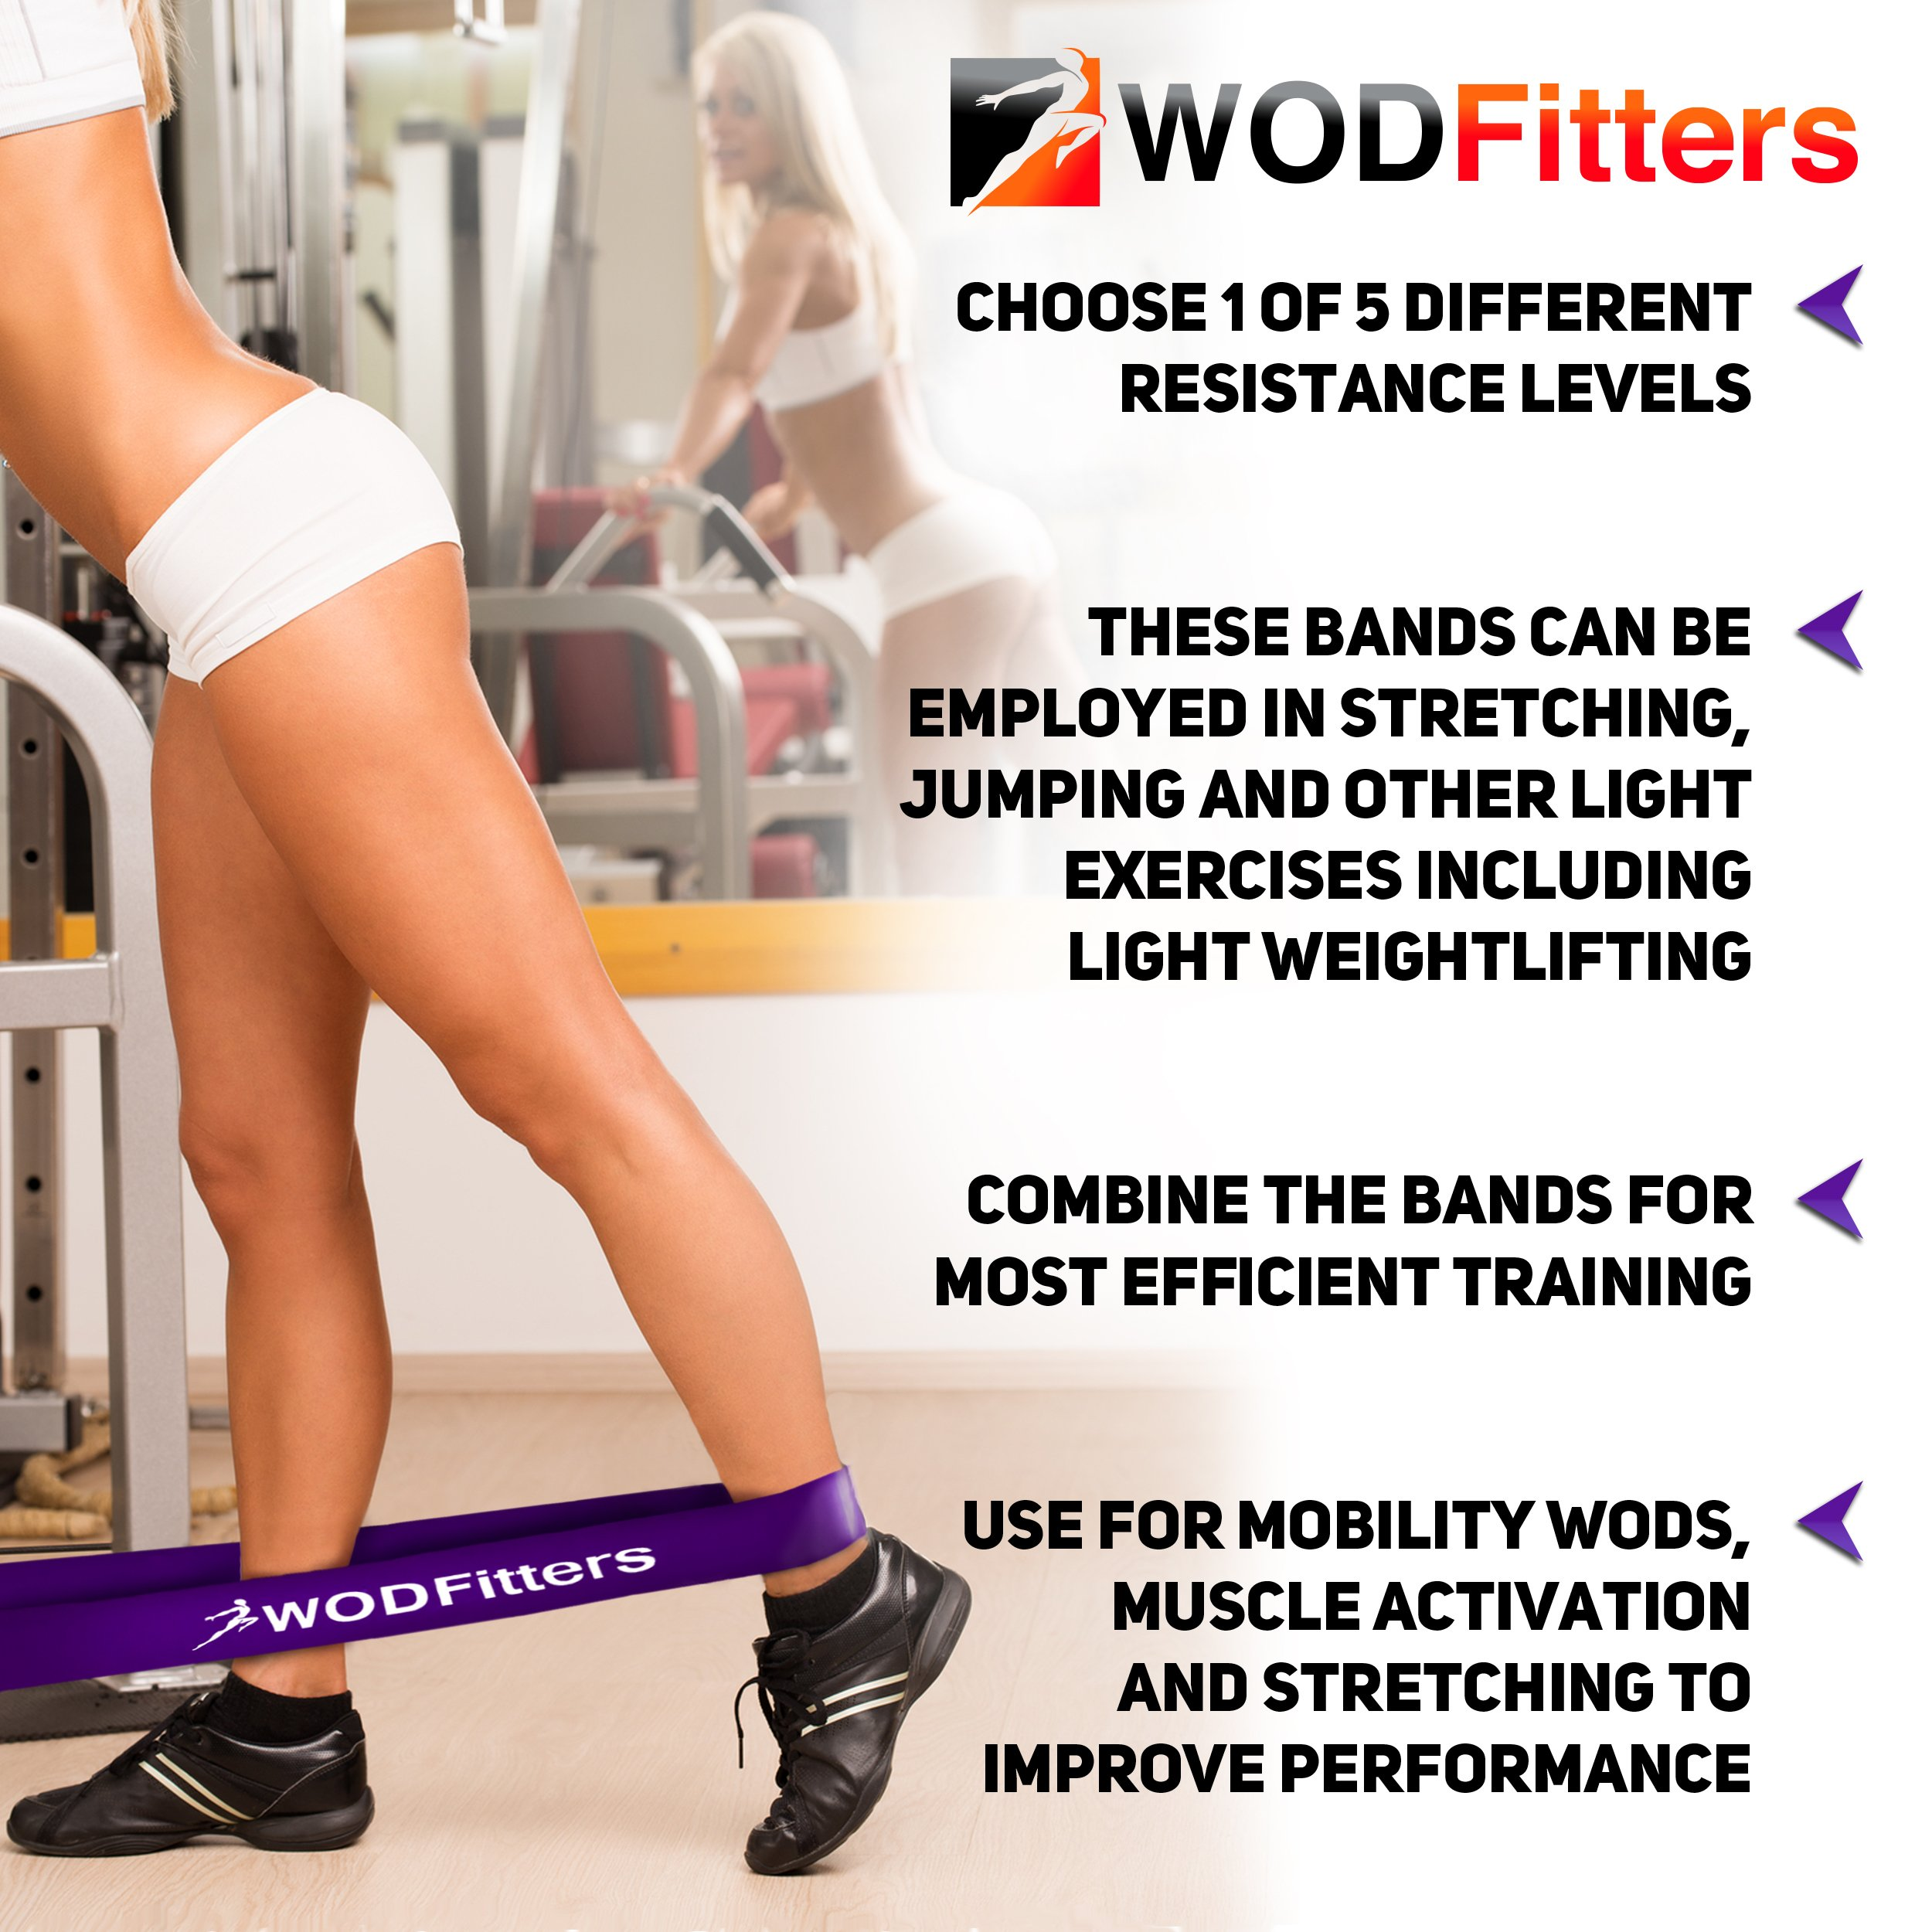 WODFitters Pull Up Band (Purple) Assisted Pull-up Resistance Band - Pull Up Assist Band Ideal for Assisted Pull Ups, Chin Ups or Power Lifting by WODFitters (Image #8)